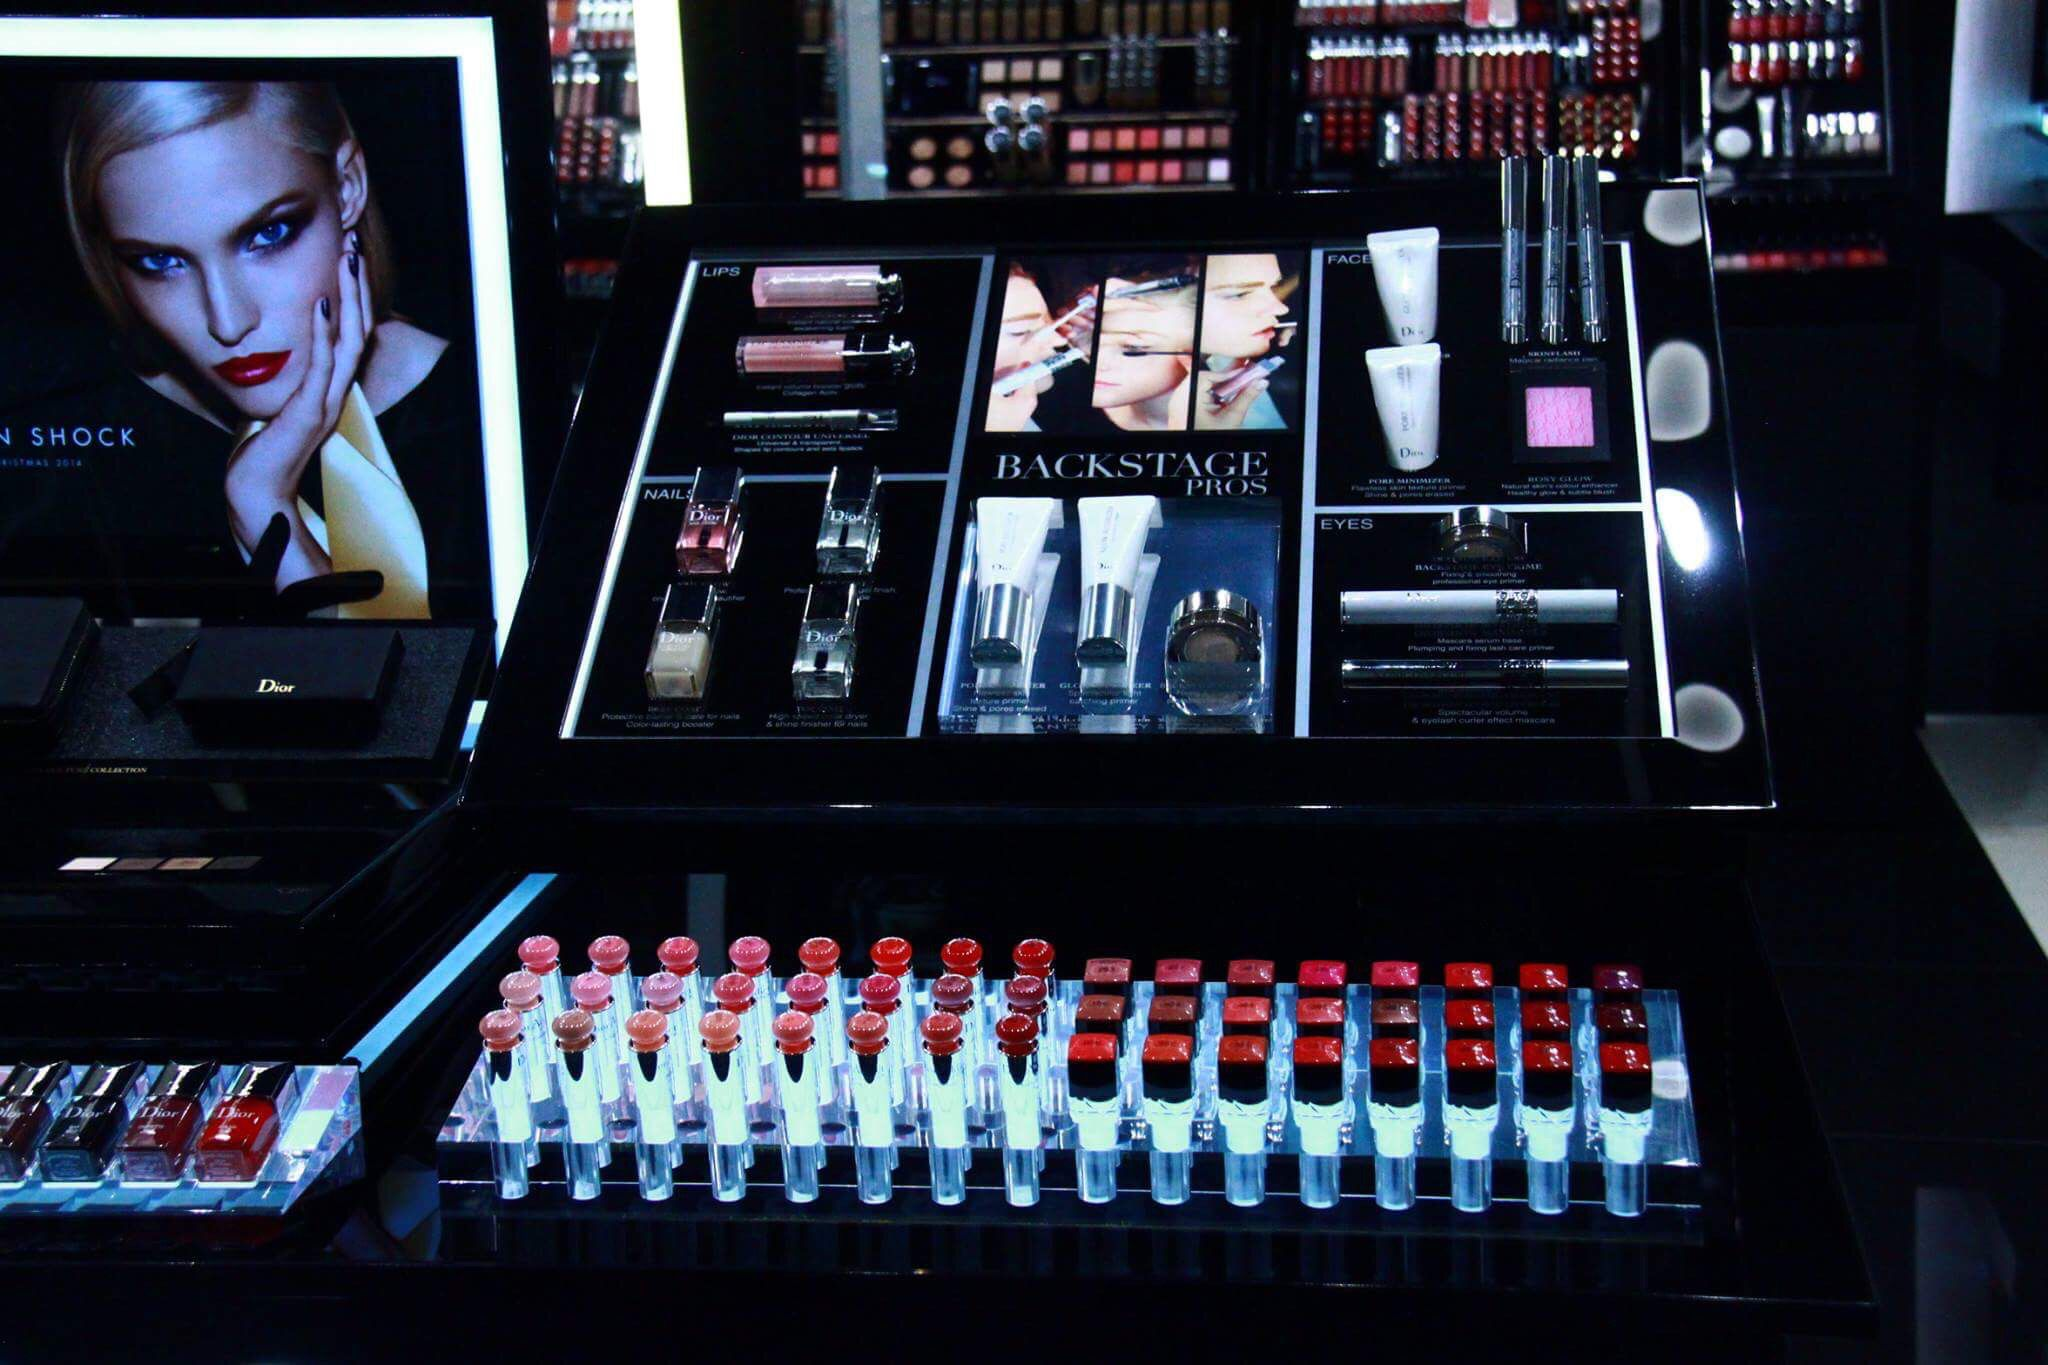 Make-up and cosmetic display made of acrylic for a store stand. Retail design.